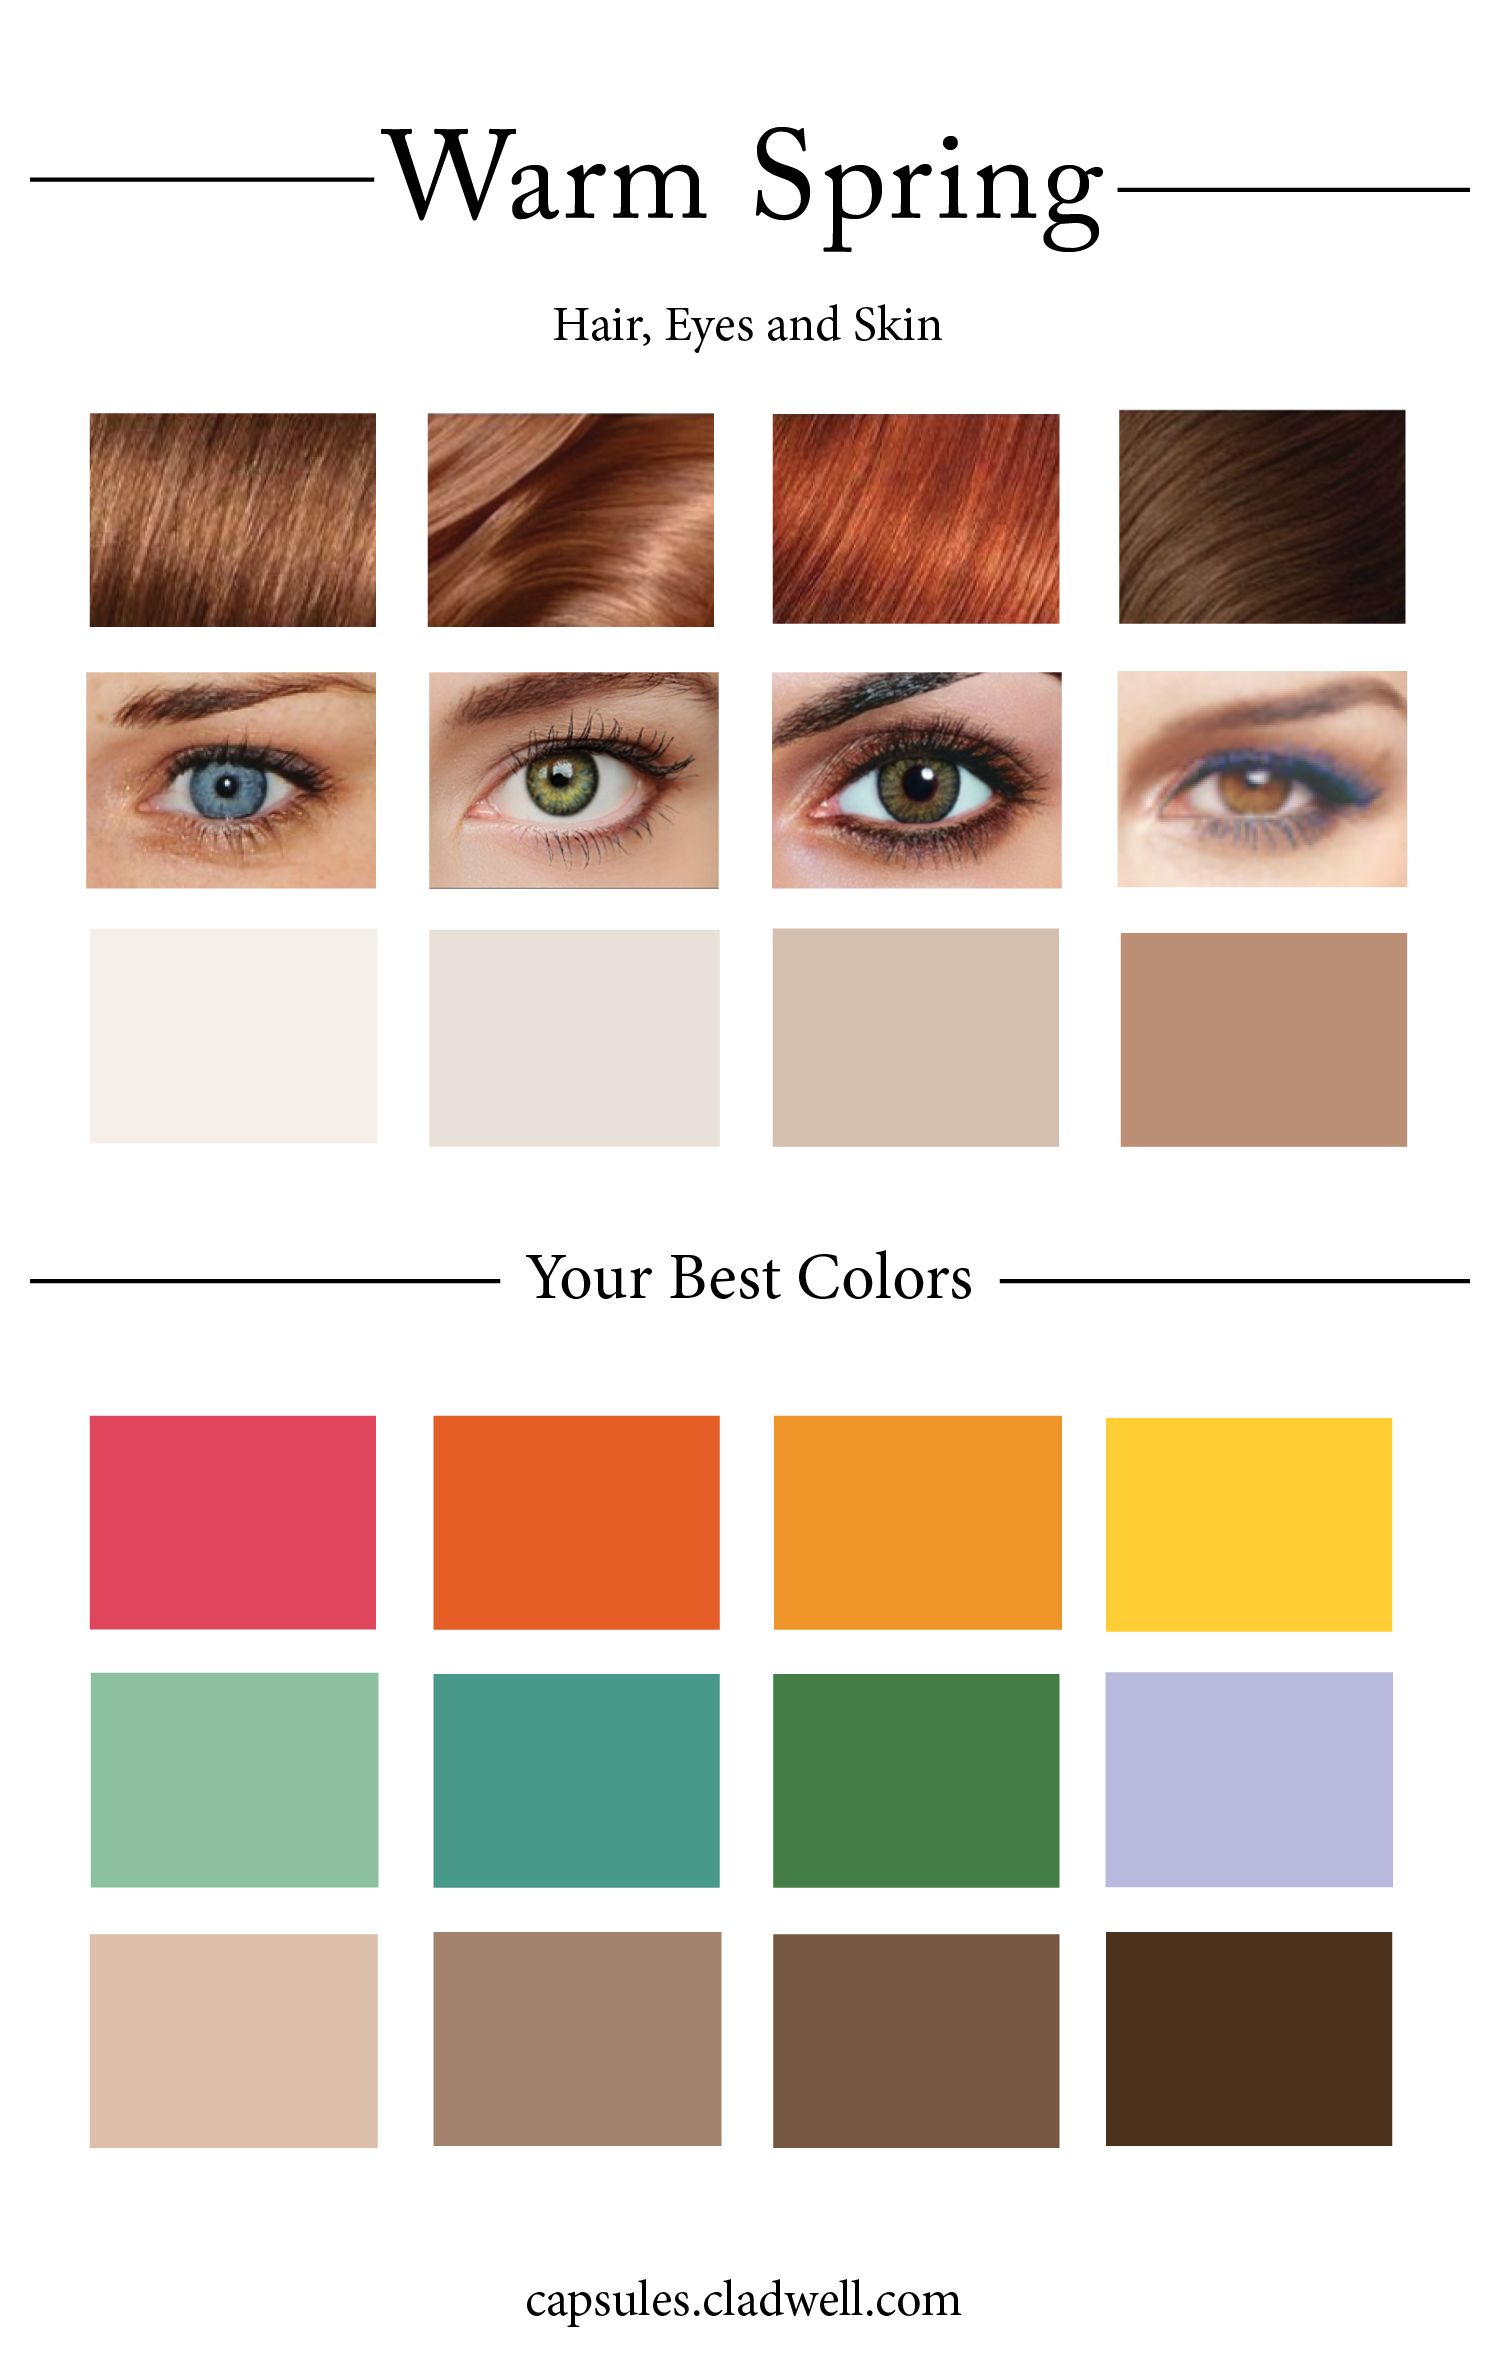 How to create your personal color palette plus take our color quiz